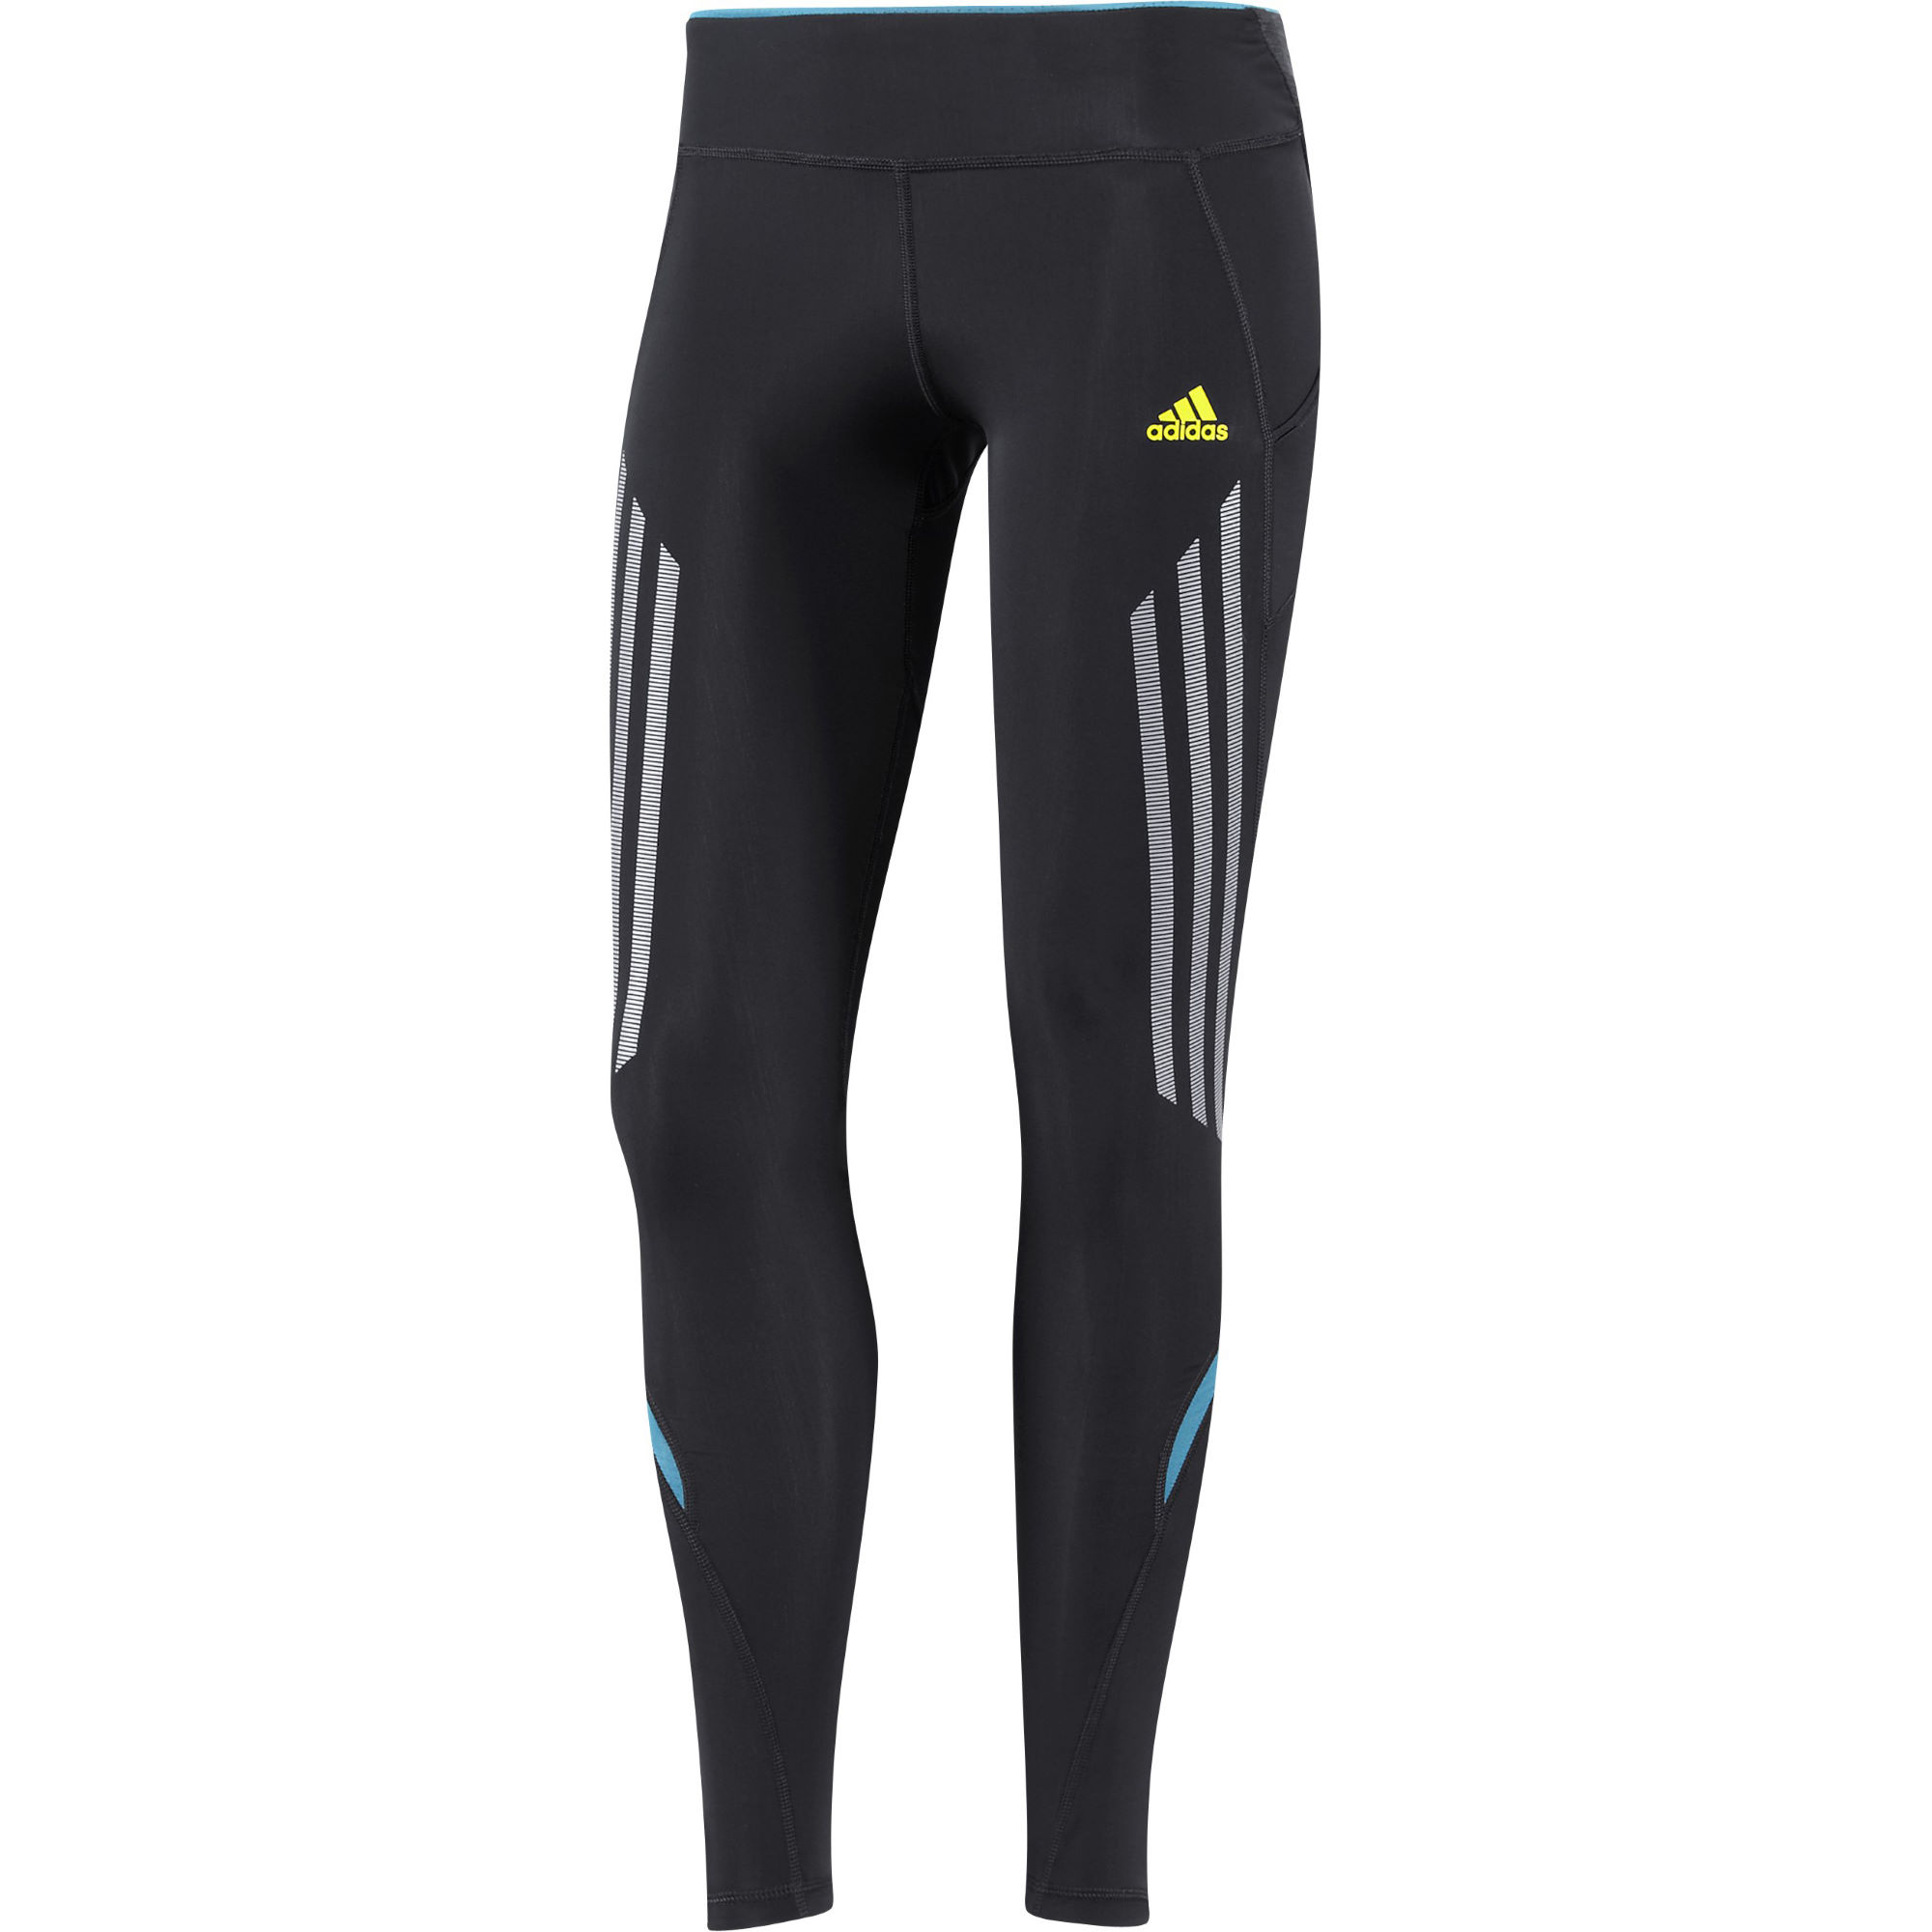 Best Sellers in Men's Running Tights #1. NEKO SPORTS Men's Compression Pants Baselayer Cool Dry Sports Tights Leggings Running Tights Long Pant out of 5 stars in MEN'S RUNNING TIGHTS. Gift Ideas in MEN'S RUNNING TIGHTS ‹ Any Department ‹ Sports & Outdoors.